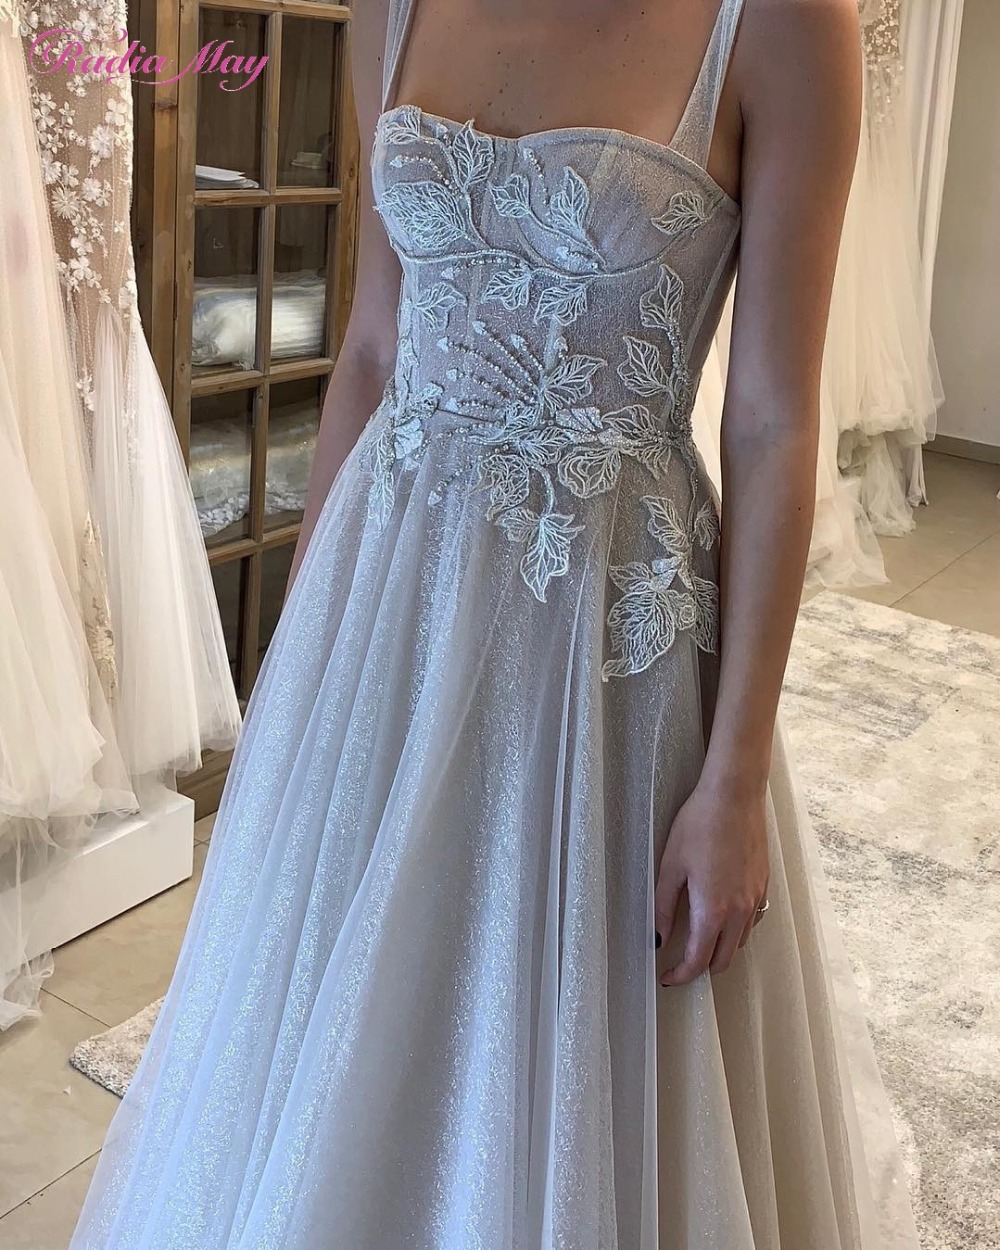 Vintage Wedding Dresses Amsterdam: Vintage Lace Embroidery Bling Wedding Dress With Straps